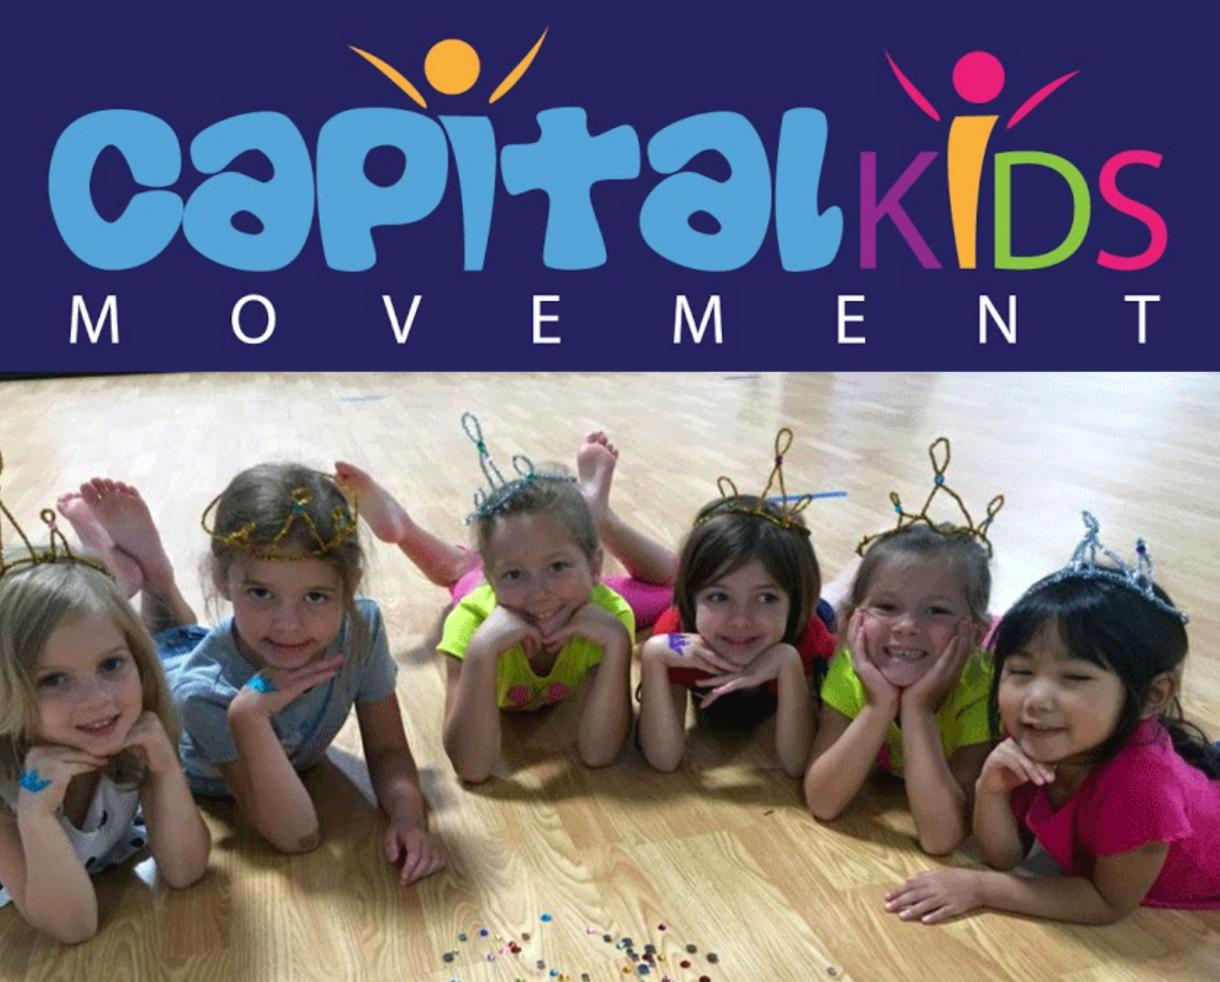 $45+ for Capital Kids Pirate, Princess, Superhero or Dance/Cheer Camp for Ages 3-6 - Ashburn (Up to 49% Off!)